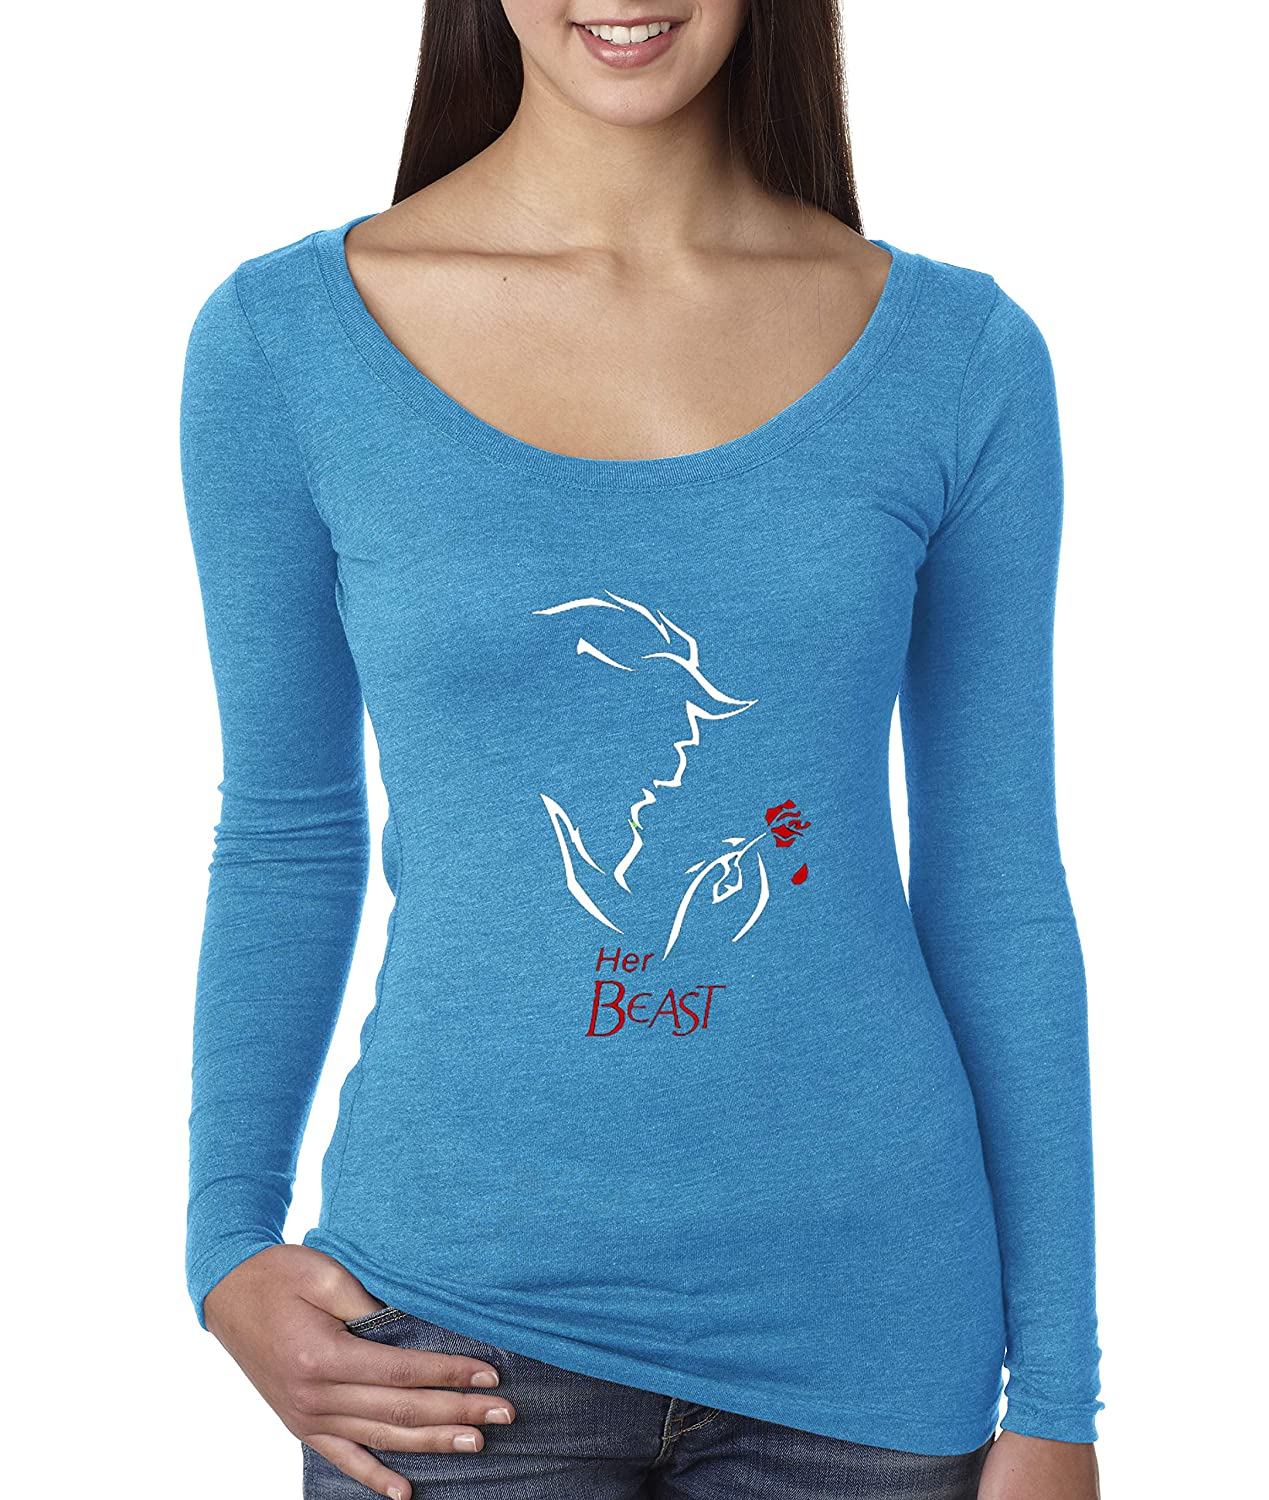 Turquoise Trendy USA 642  Women's Long Sleeve TShirt Her Beast Couples pink Petal Belle Beauty